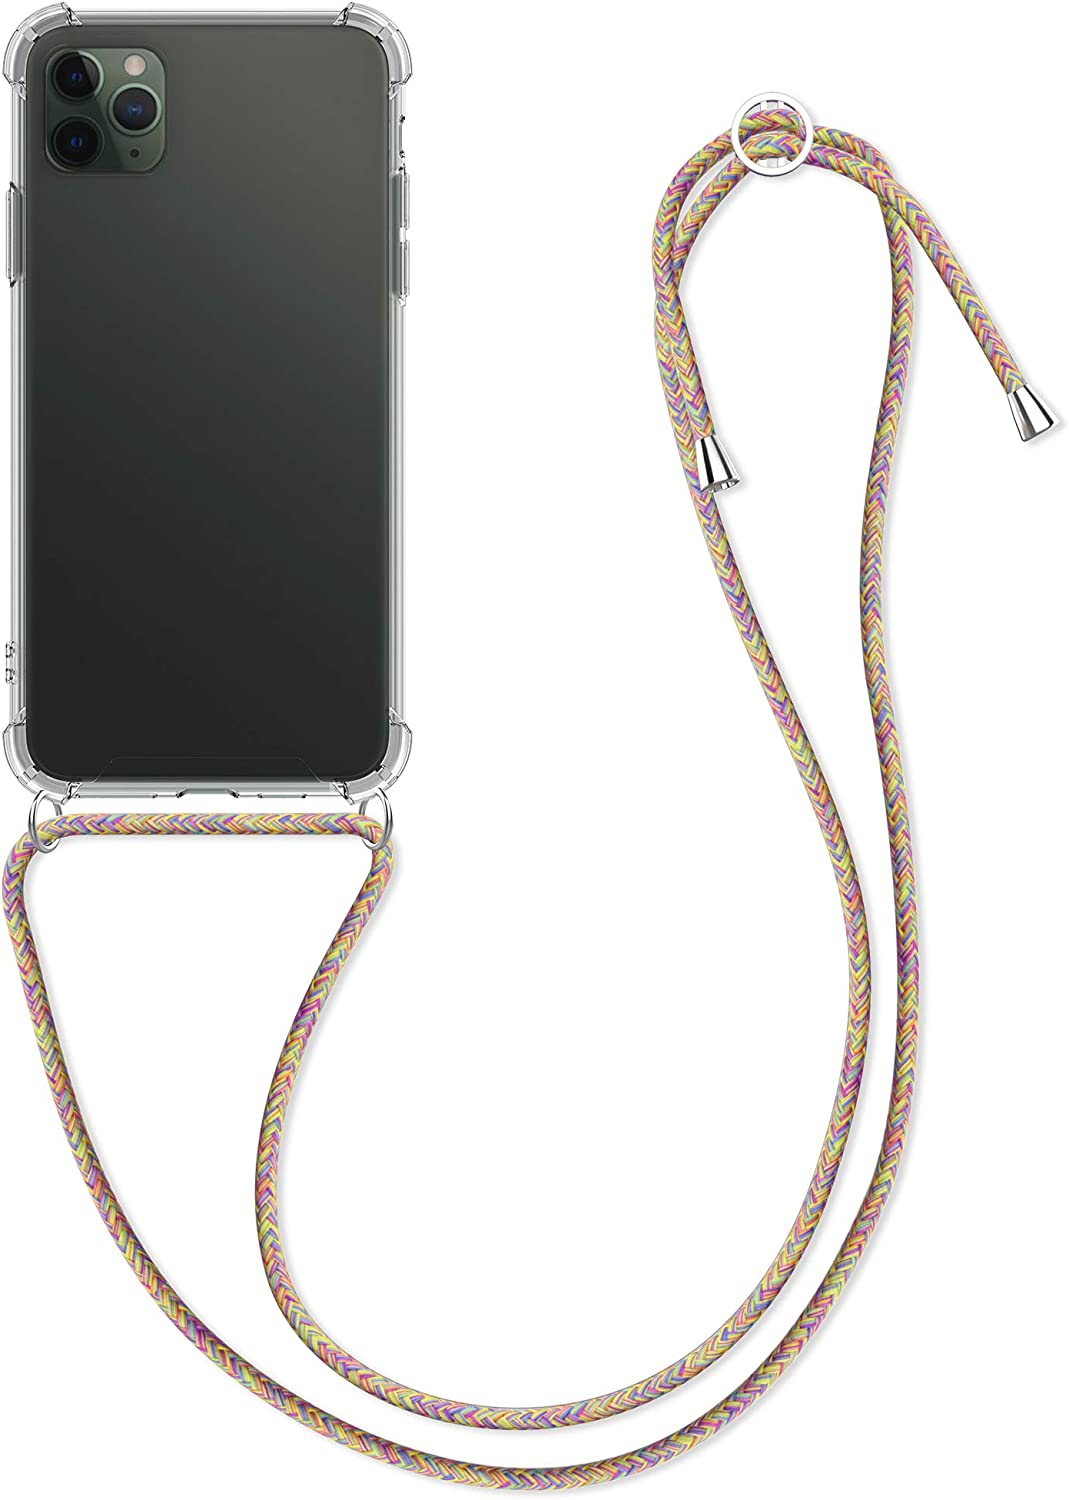 kwmobile Crossbody Case Compatible with Apple iPhone 11 Pro Max - Case Clear TPU Phone Cover w/Lanyard Cord Strap - Transparent/Dark Pink/Violet